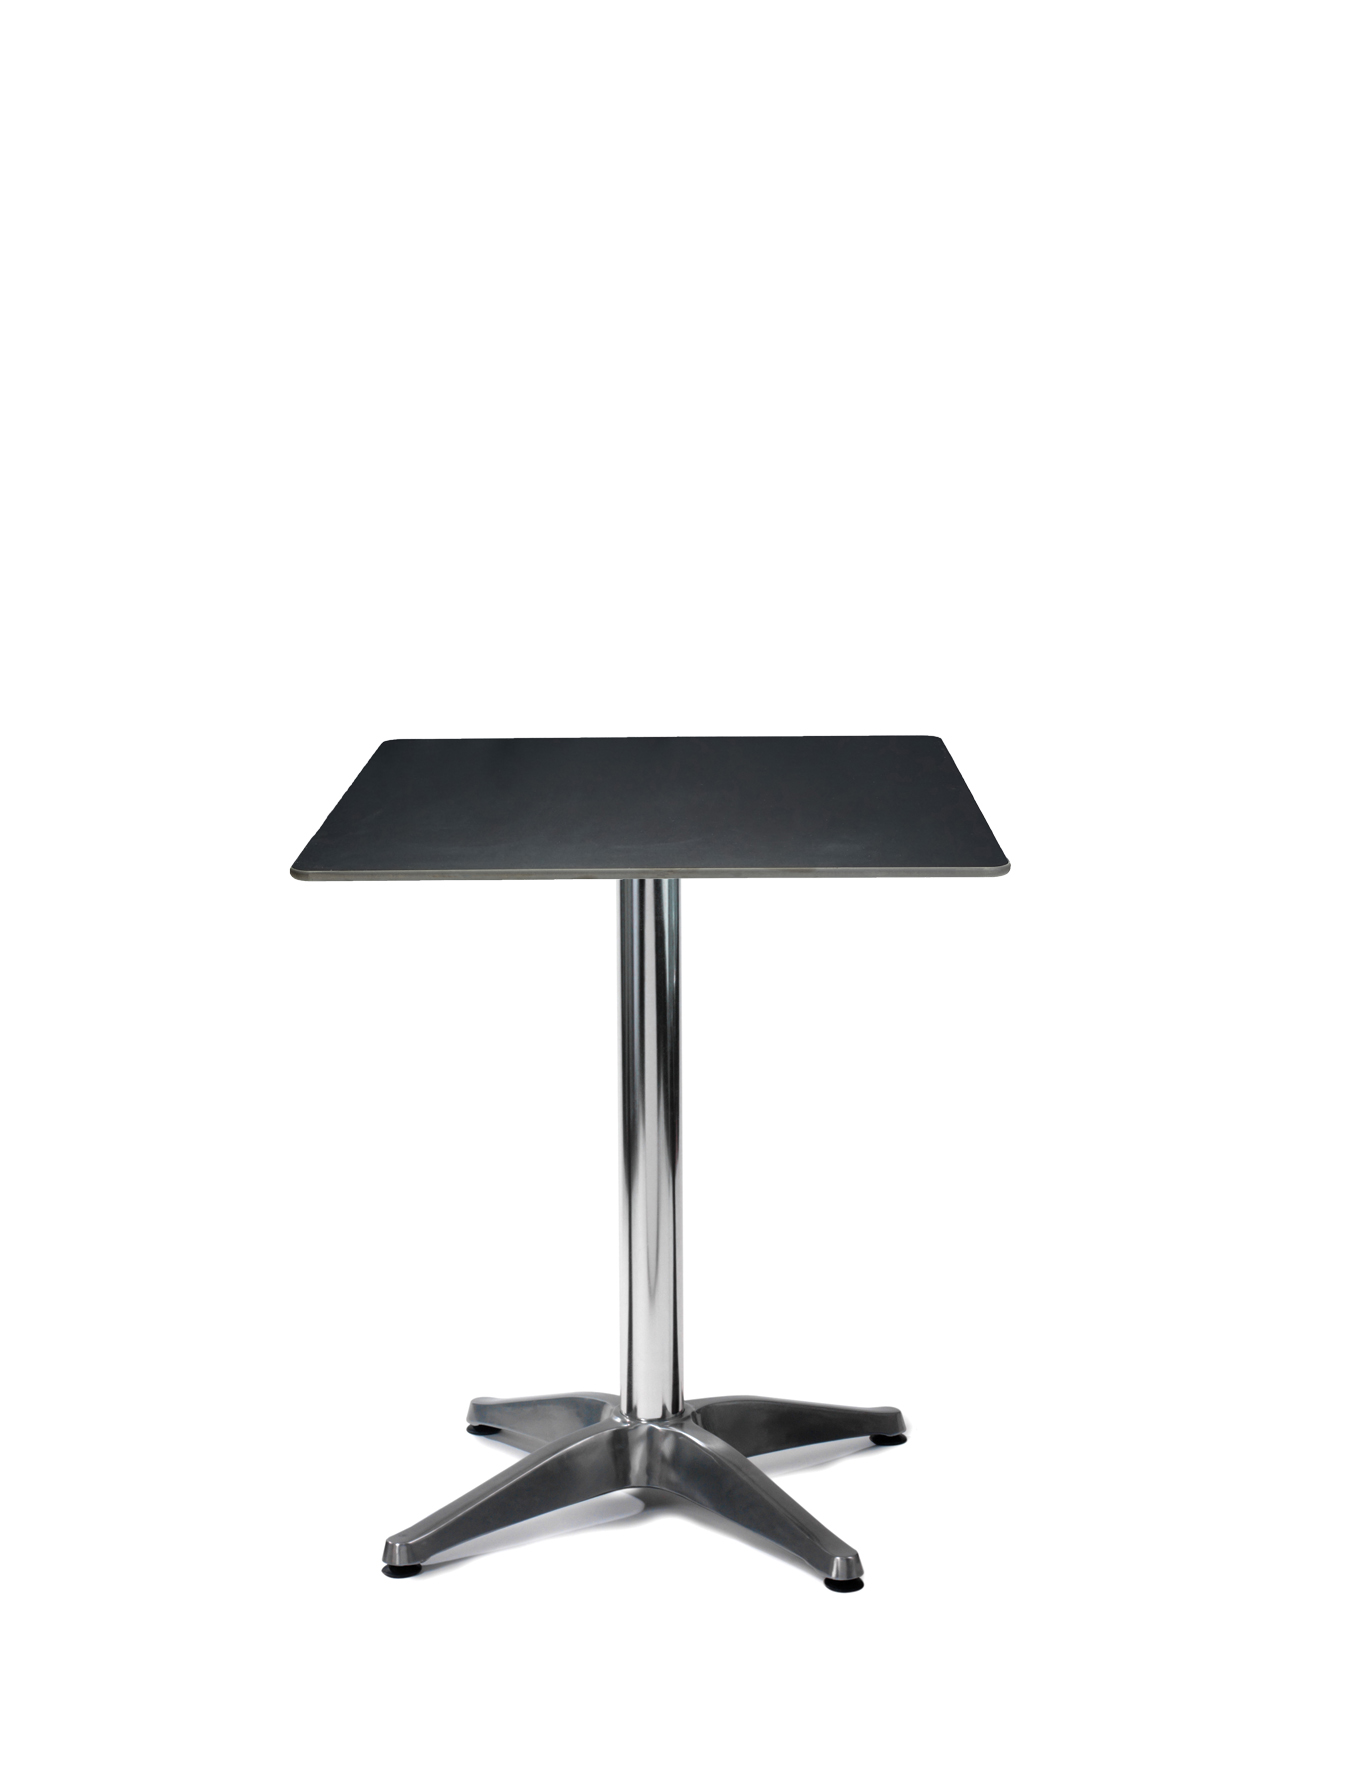 INDOOR TABLE & BASE 600X600 BLACK MARBLE EFFECT TABLE&BASE 2324